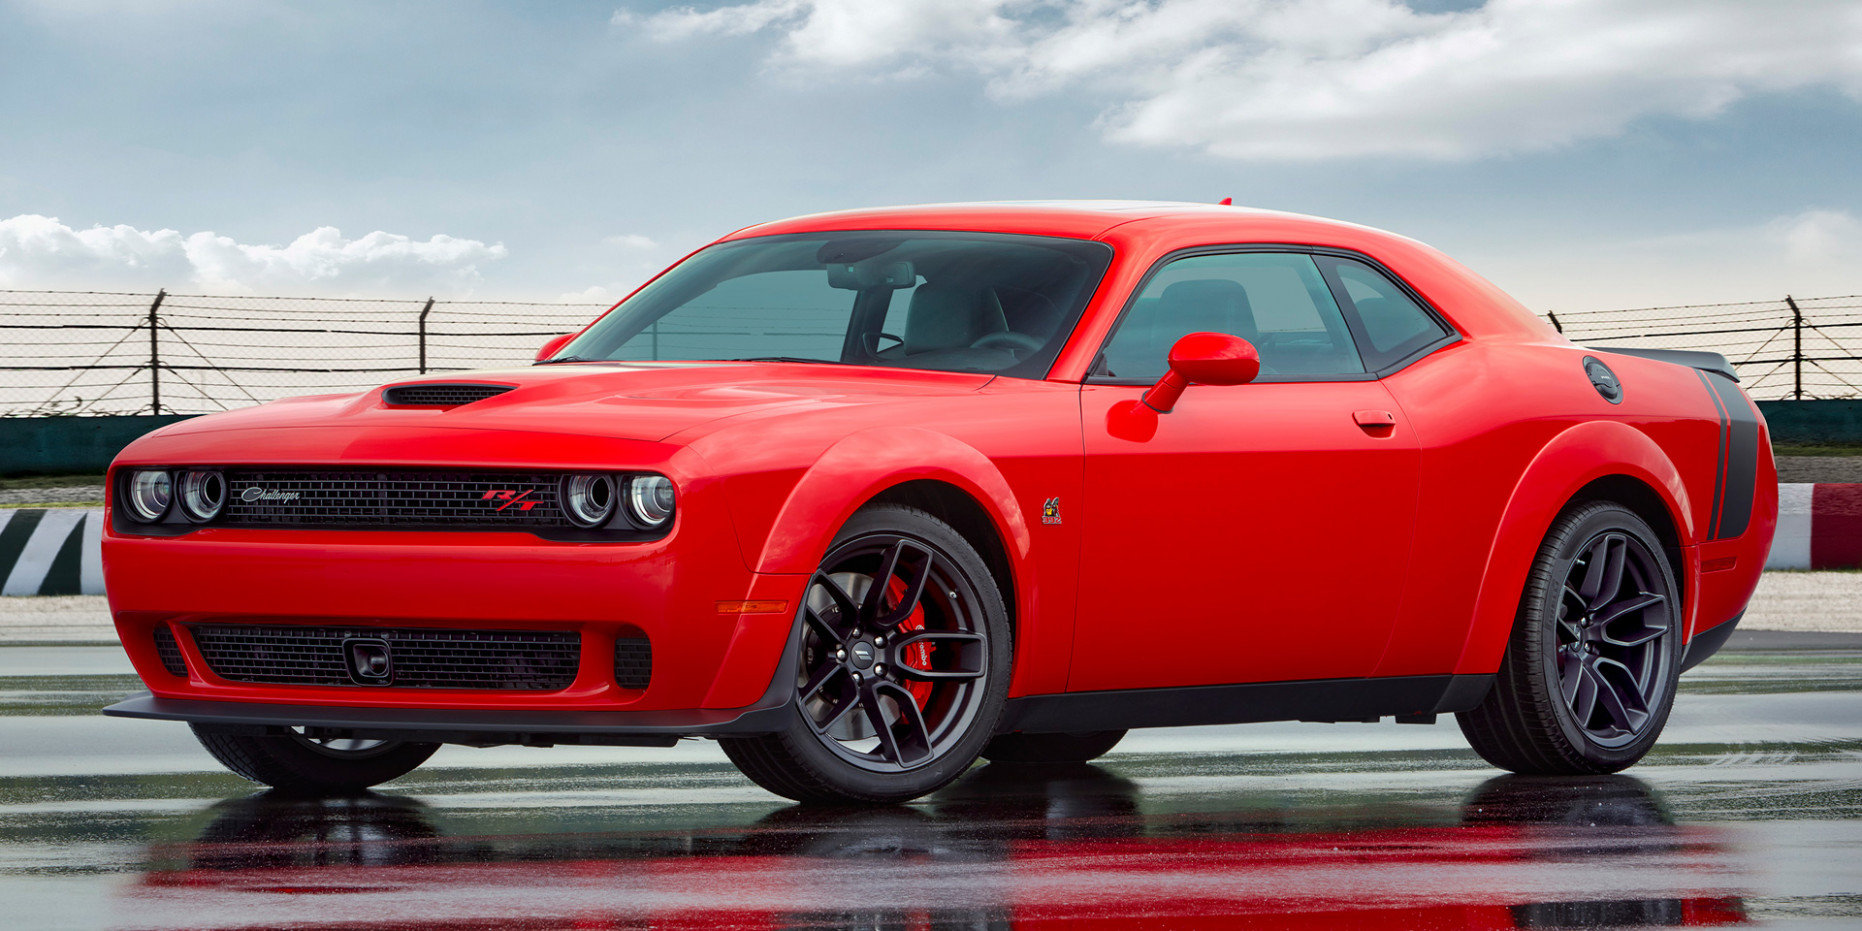 11 - Dodge - Challenger - Vehicles on Display | Chicago Auto Show